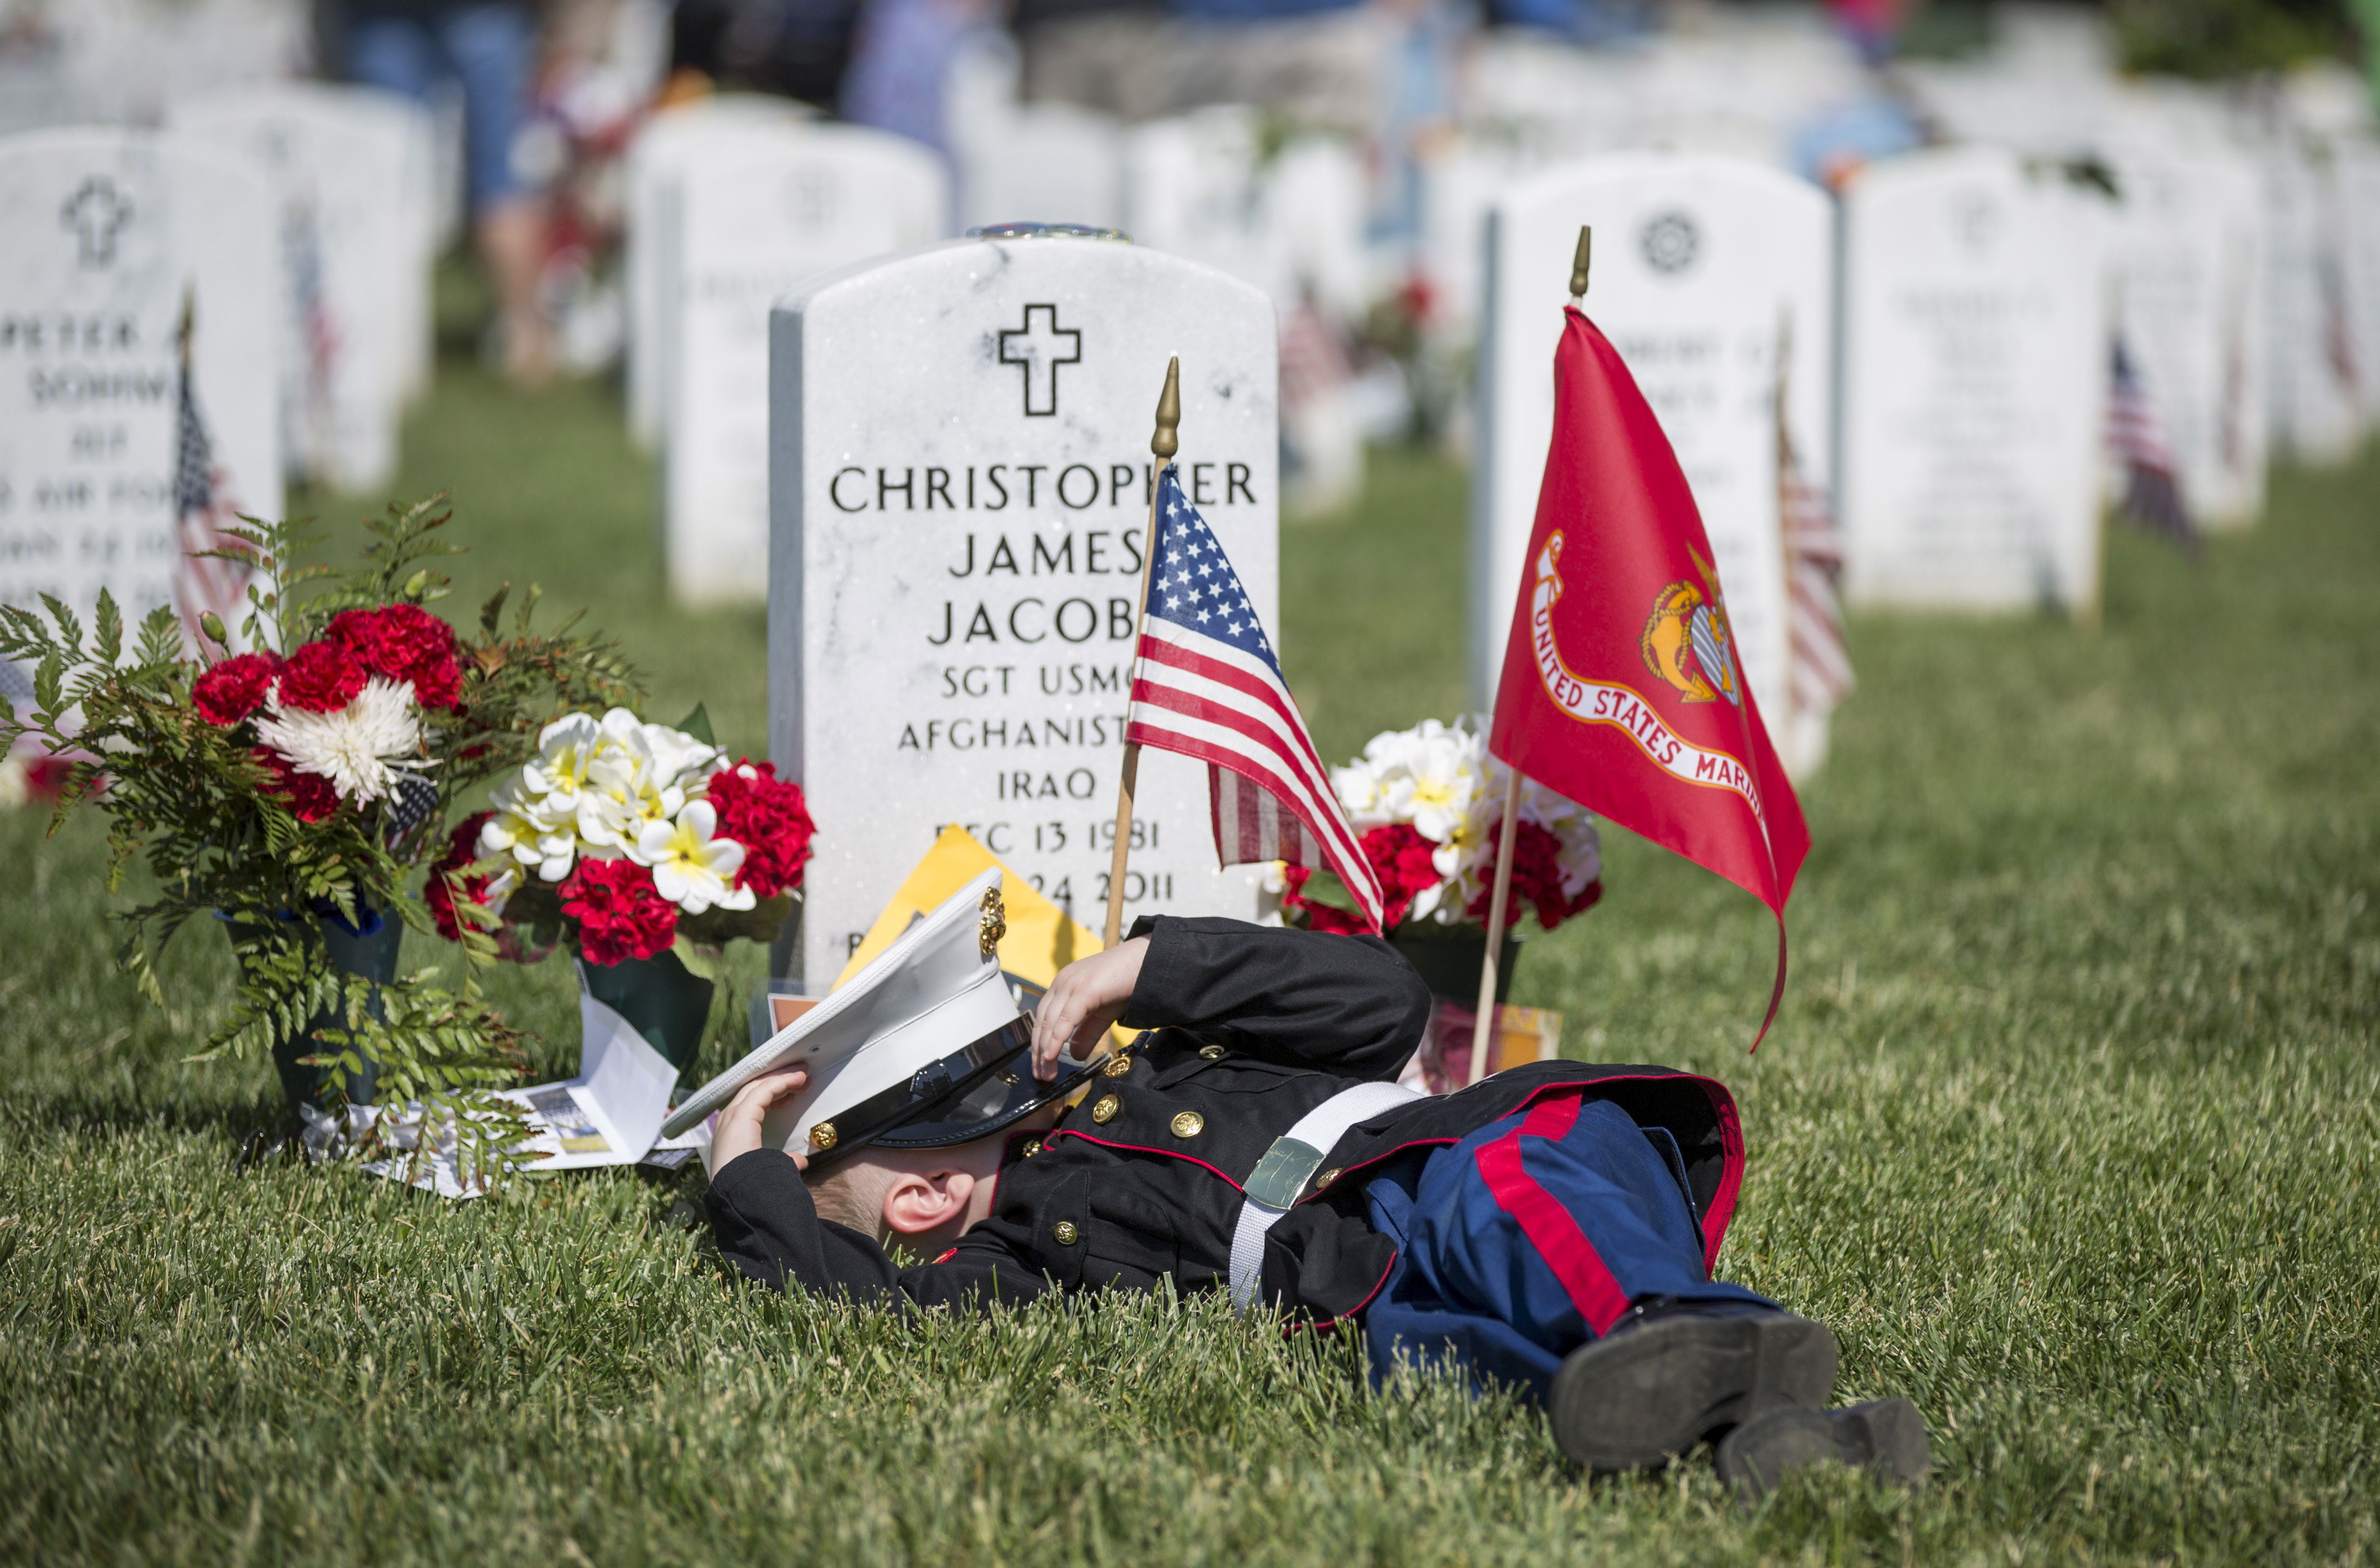 Christian Jacobs, 4, Of Hertford, North Carolina, Lies On The Grave Of